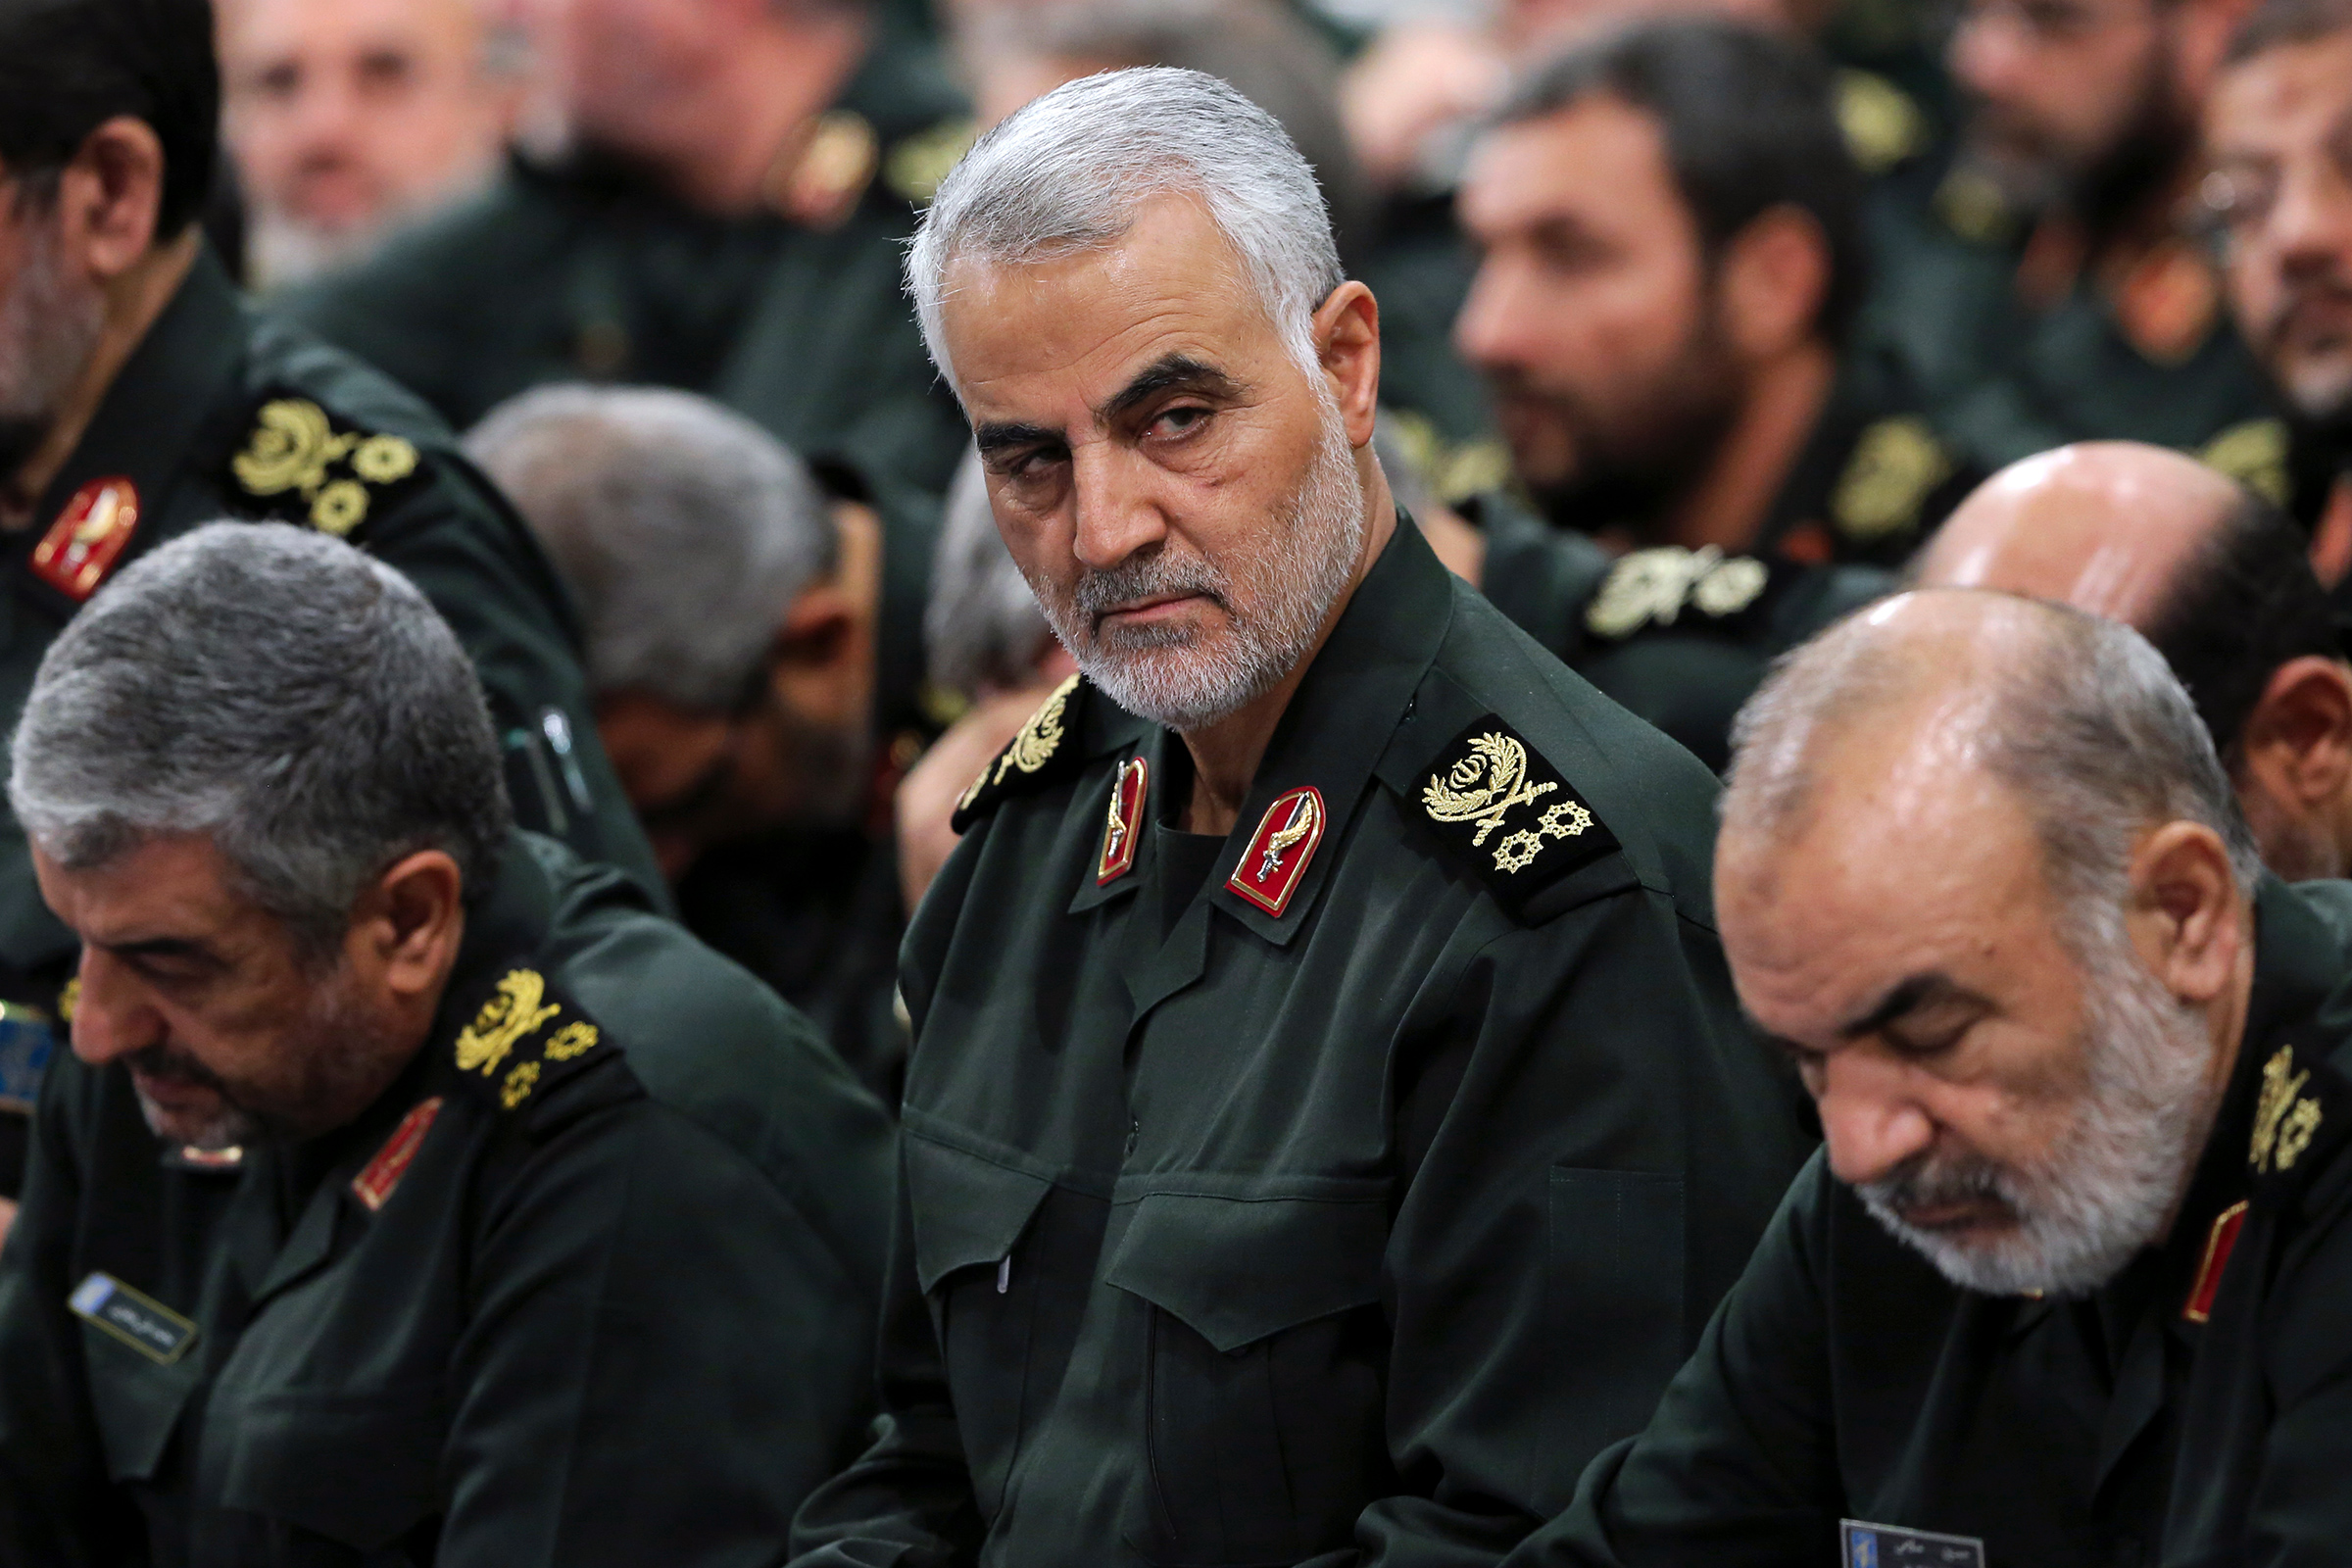 #WWIII Top Trending On Twitter After US Kills Iranian General